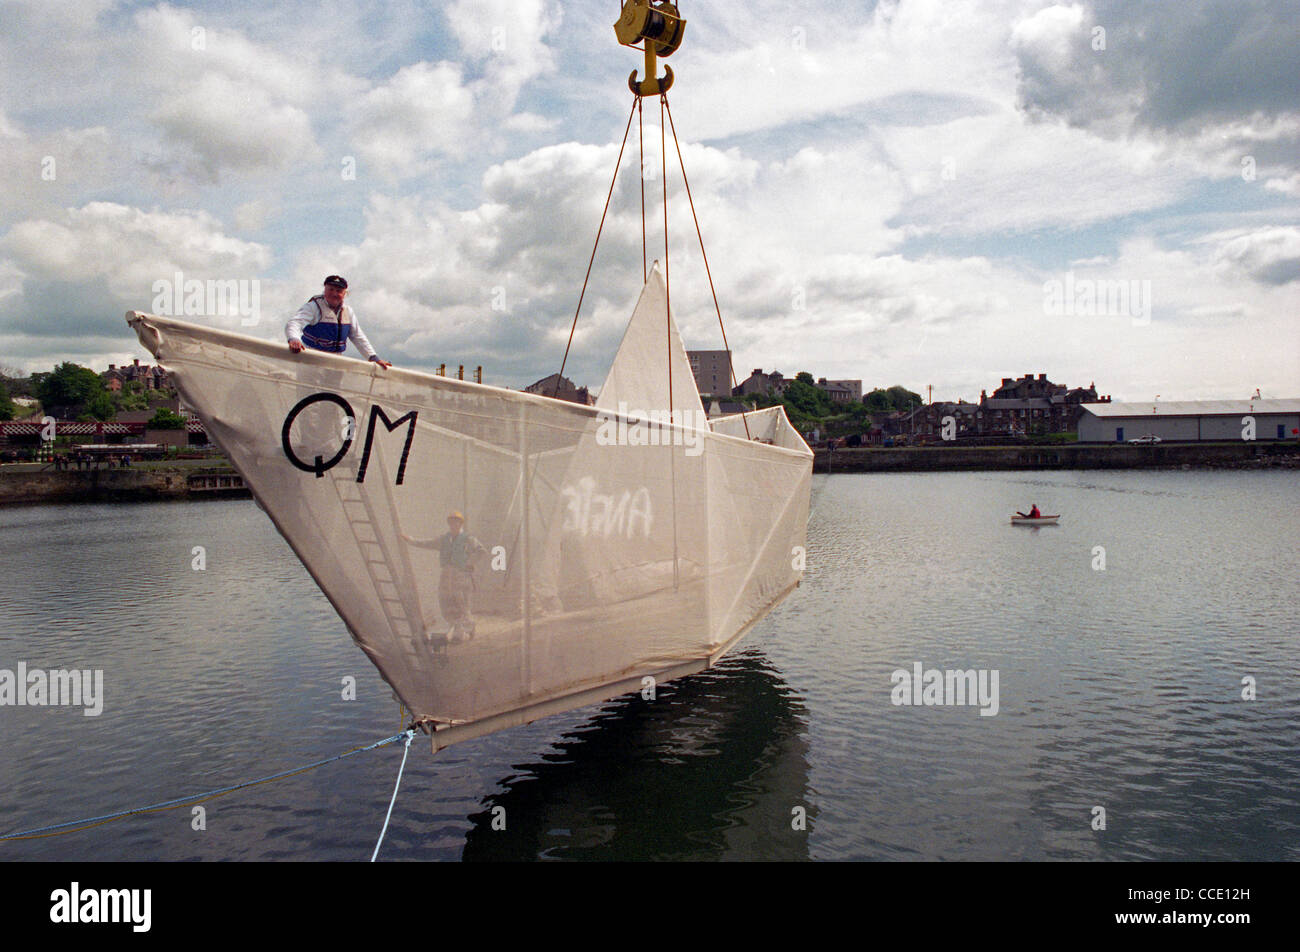 Sculptor George Wyllie's (on bow) Paper boat is craned into the water at the Consafe Shipyard in Burntisland, Fife Stock Photo